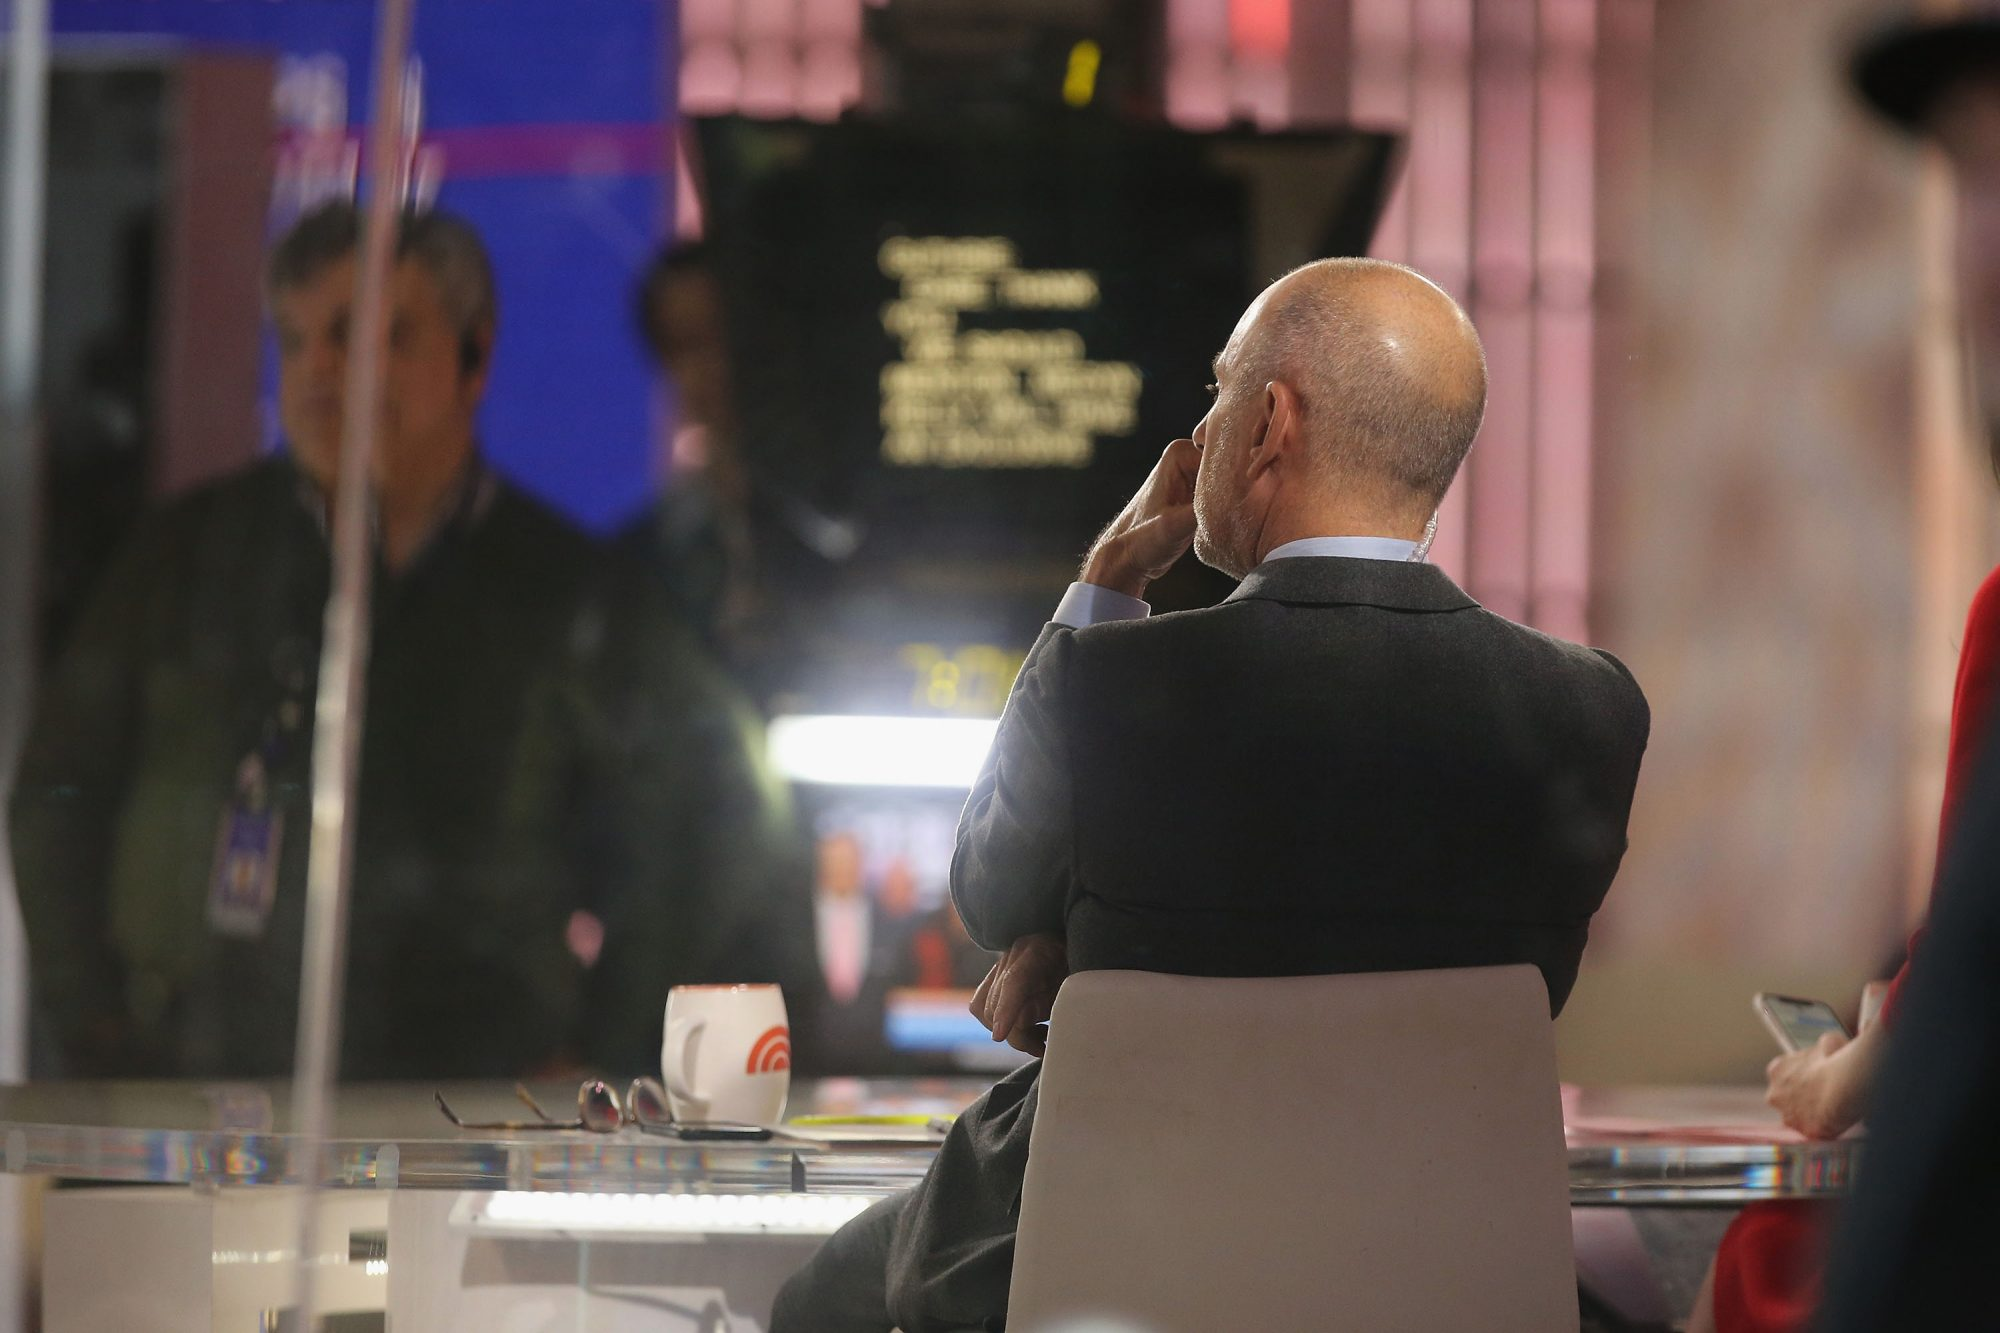 Matt Lauer Says He's Taking a 'Very Hard Look at My Own Troubling Flaws' After Firing